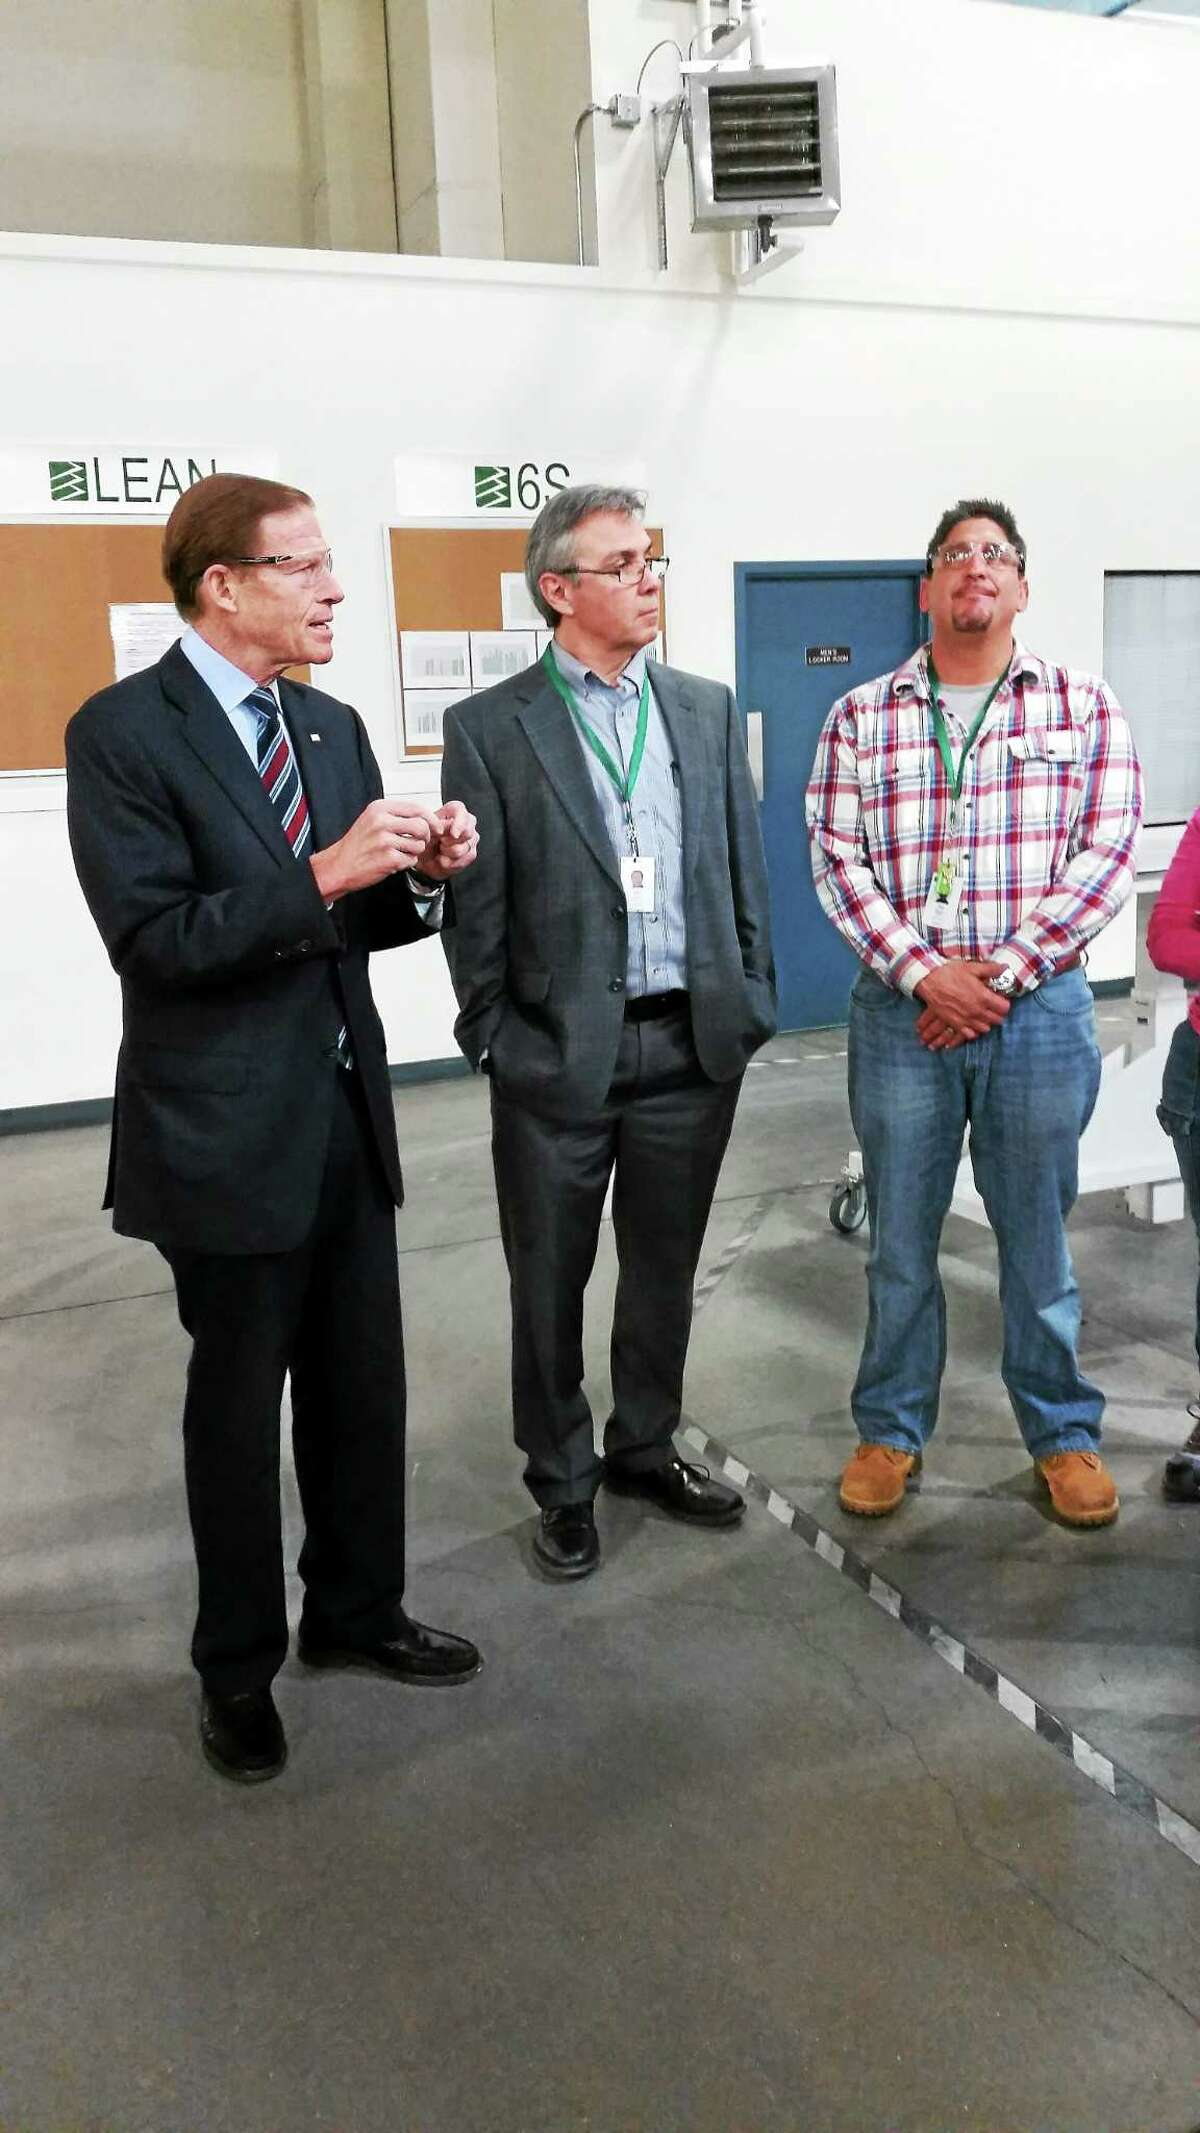 U.S. Sen. Richard Blumenthal thanks FuelCell Energy employees for their work with environmentally friendly energy sources.